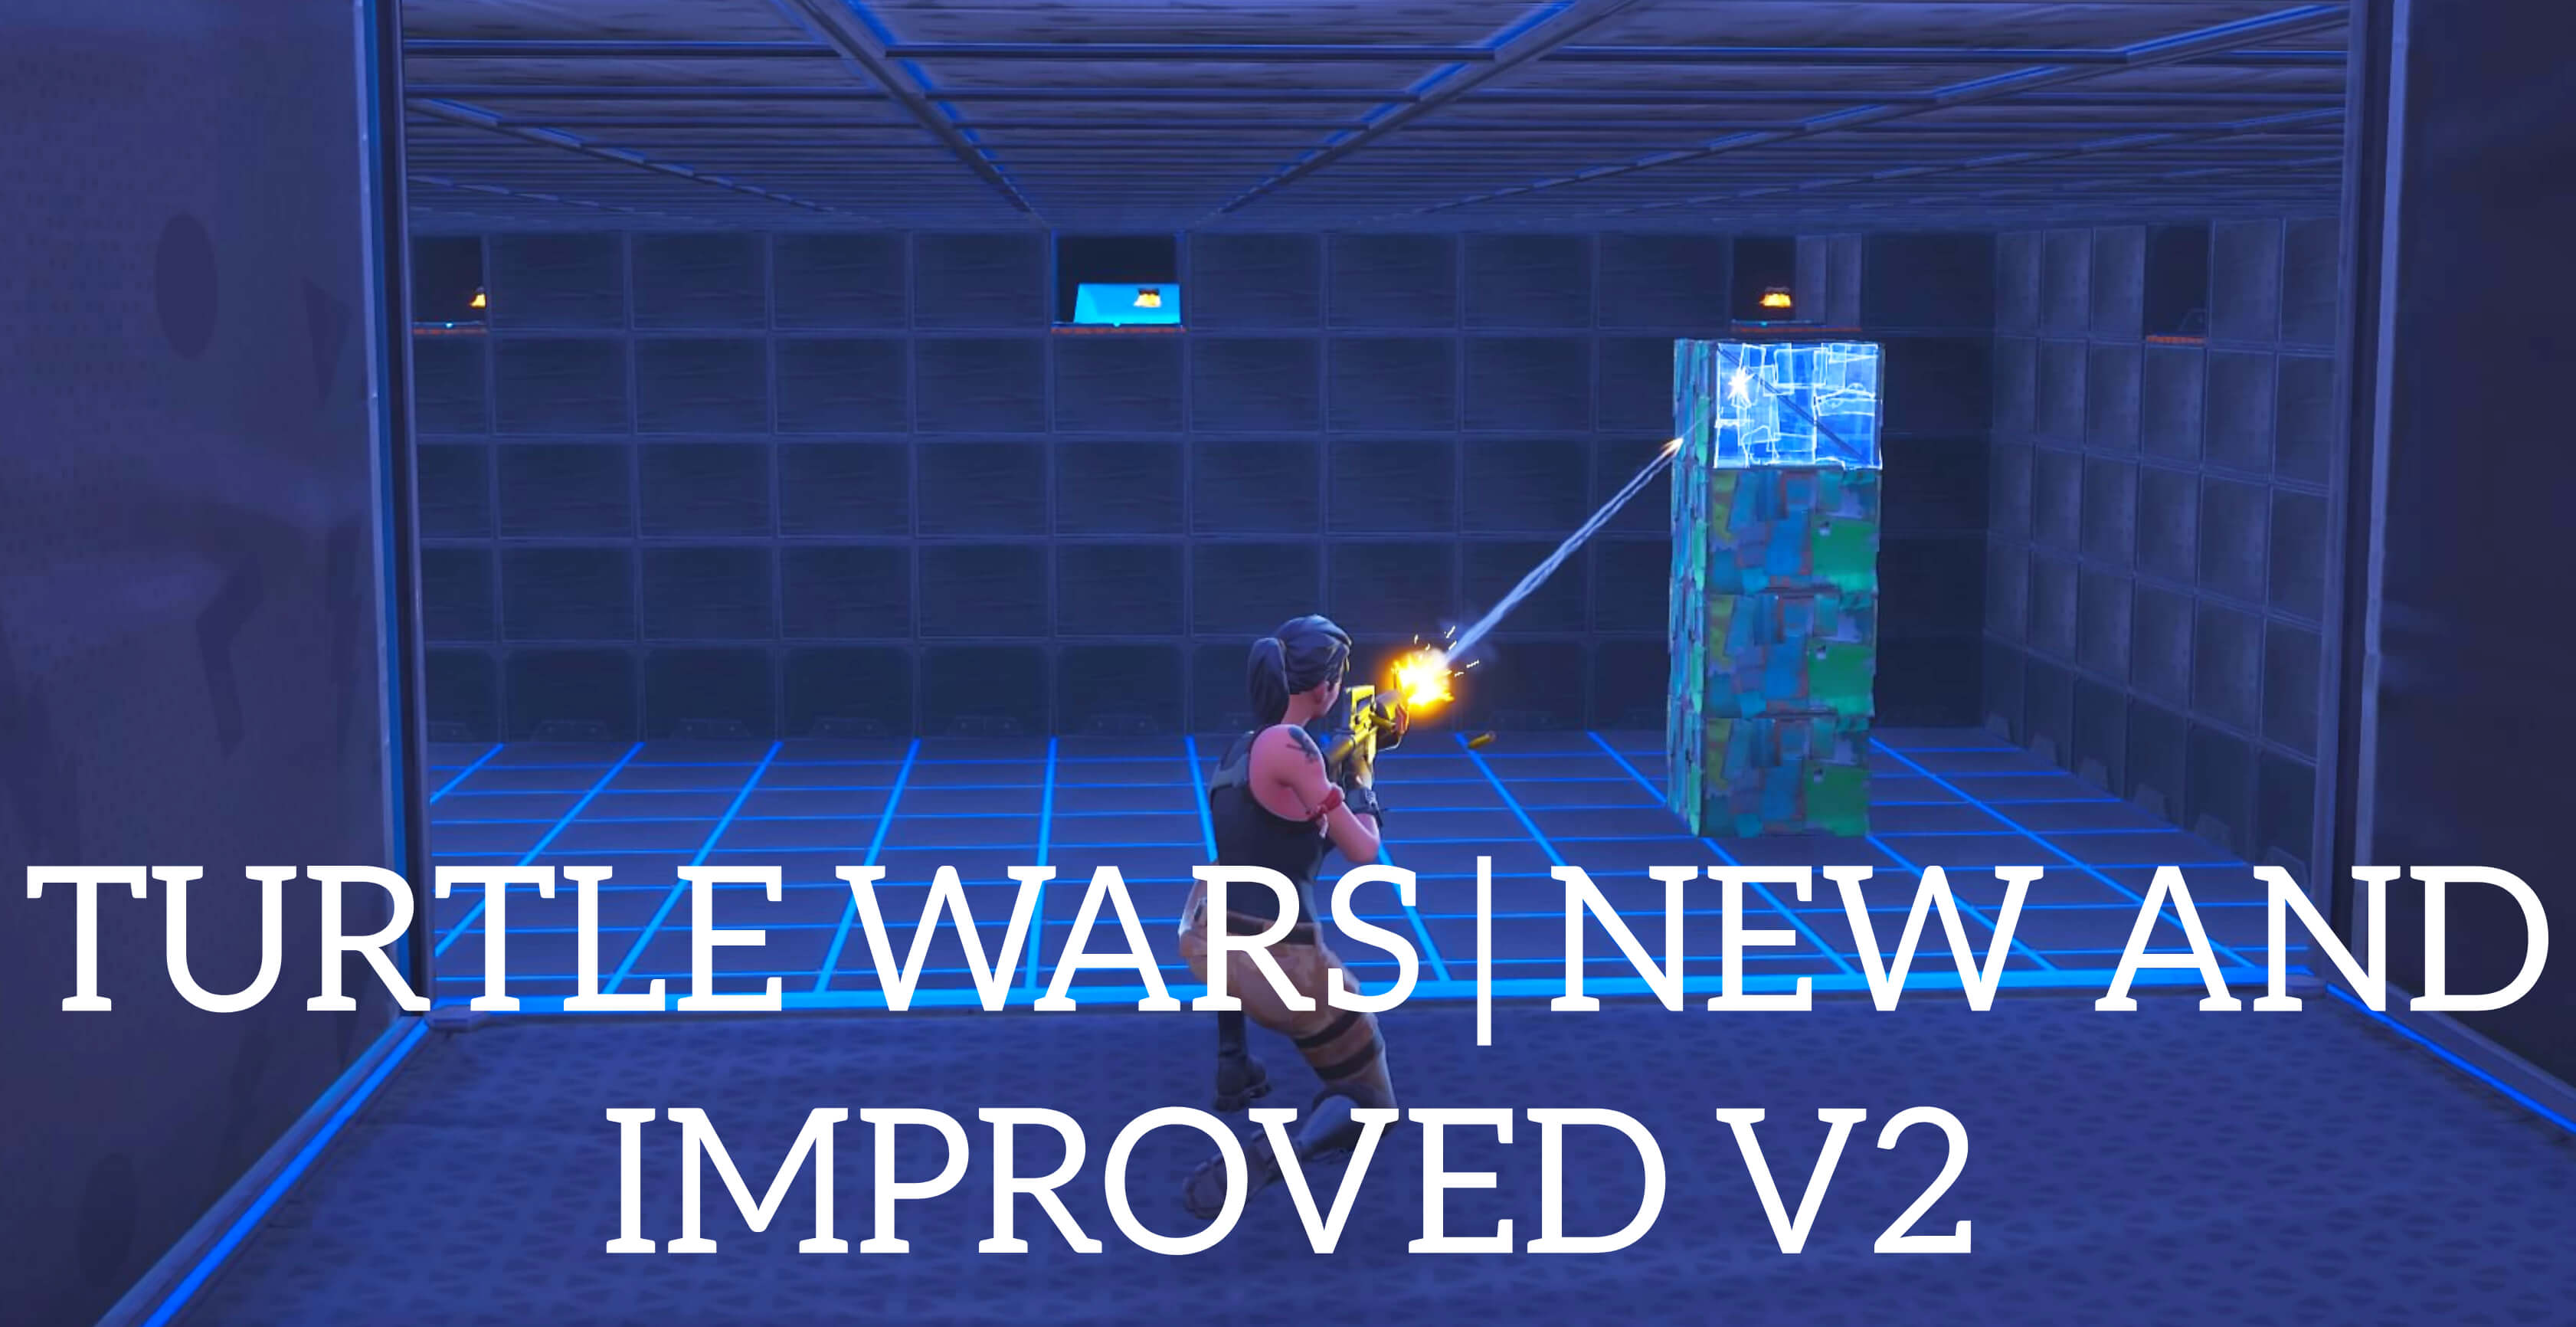 TURTLE WARS | NEW AND IMPROVED V2